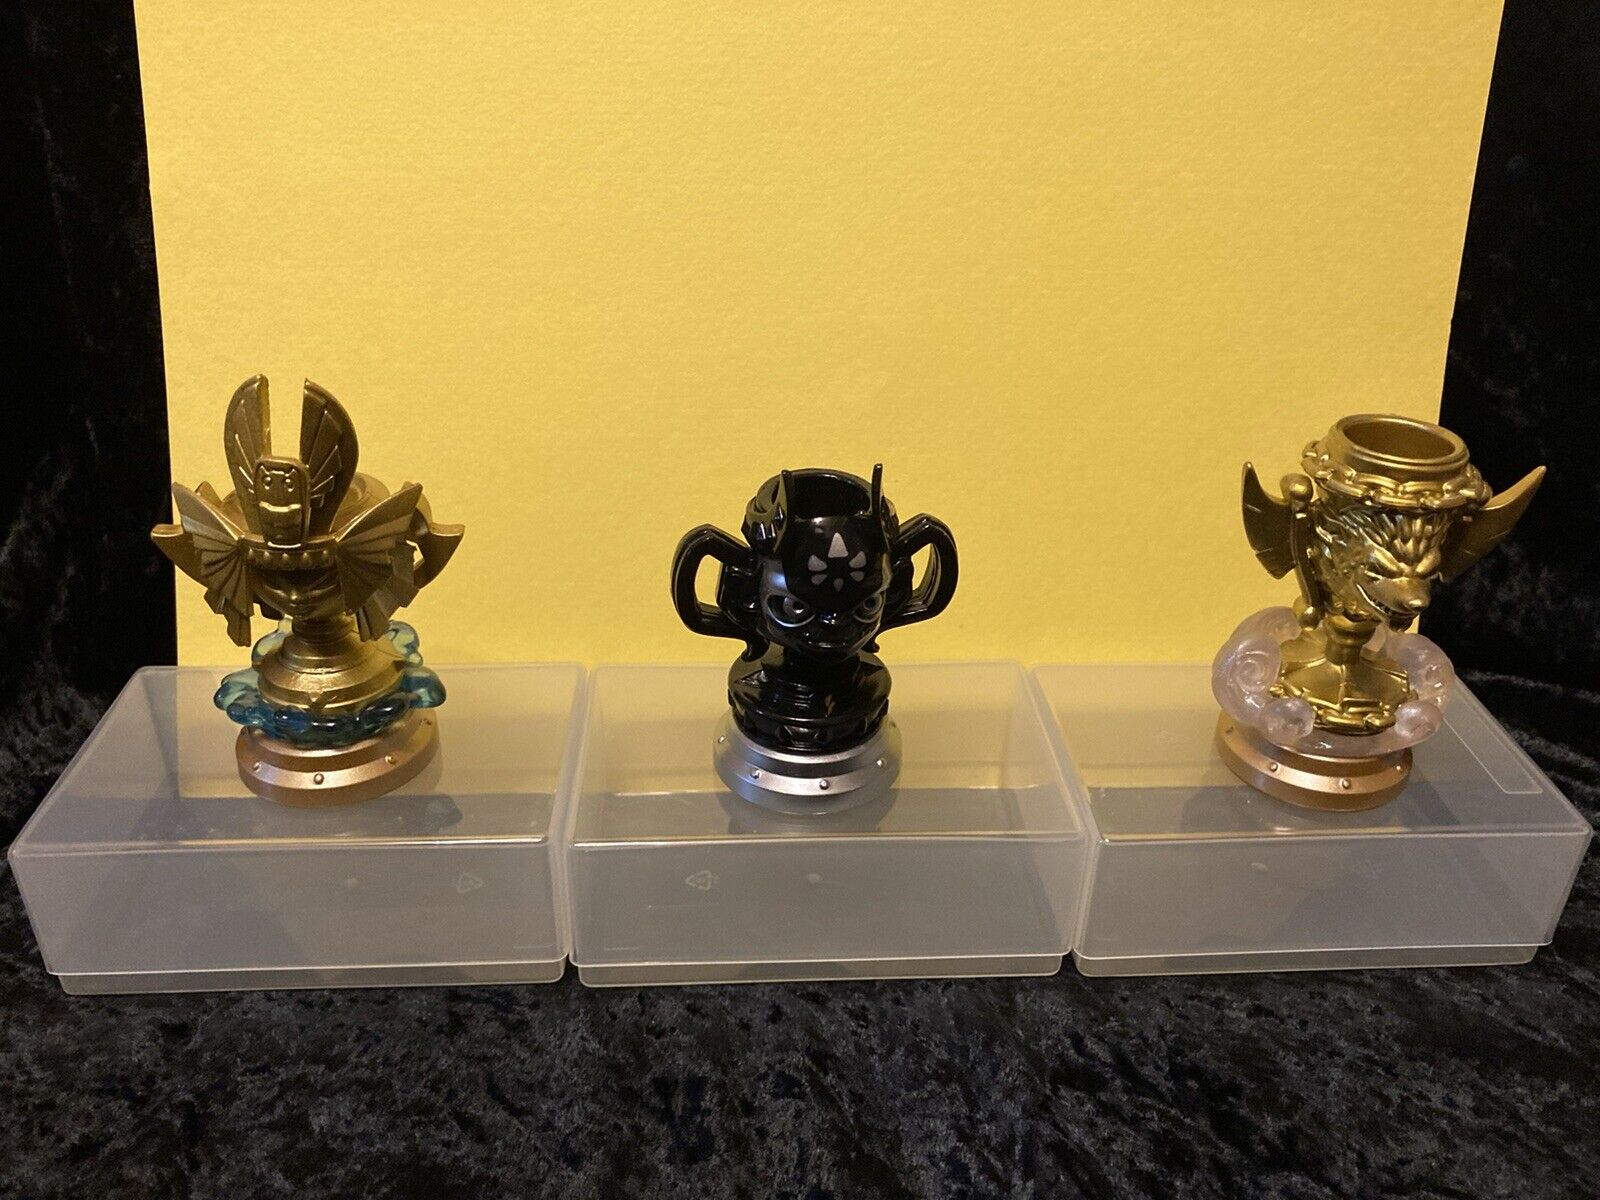 Skylanders Superchargers, Trophies x3. Brand new. P&P included.